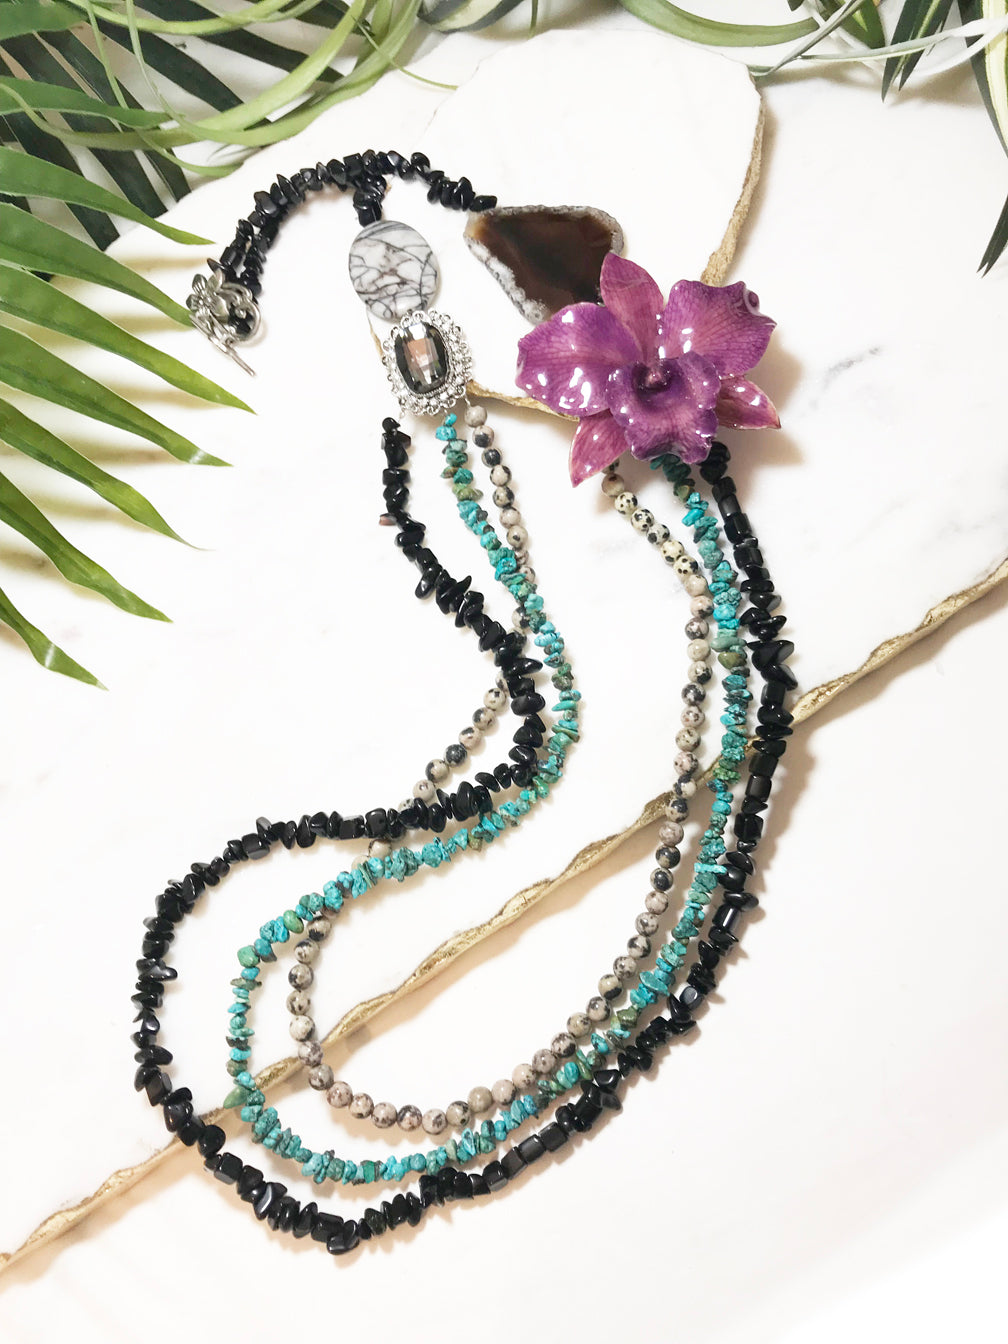 bloom tiered necklace - BL-T-005-NL